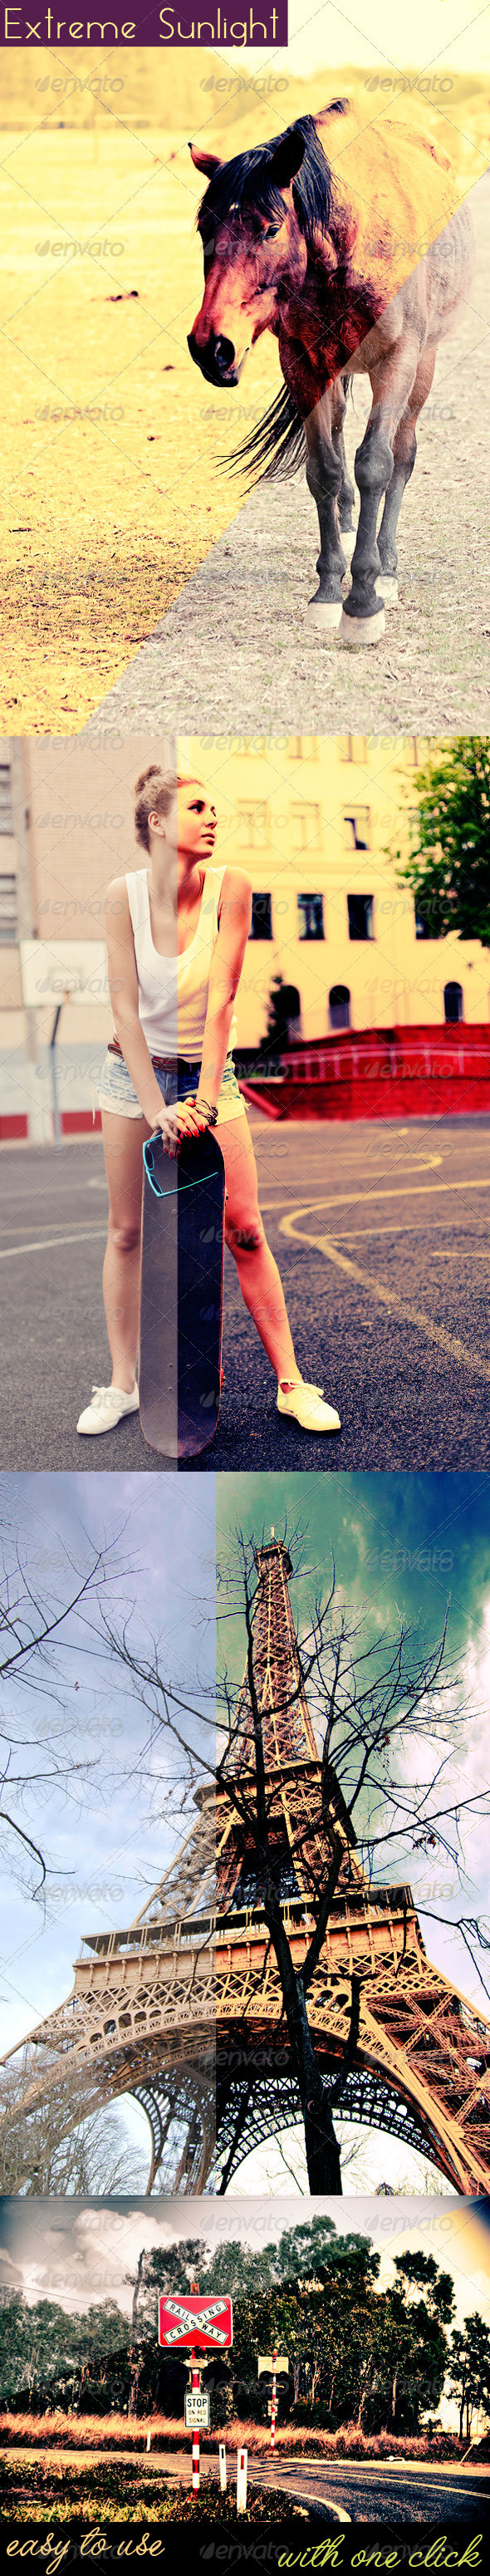 GraphicRiver Photo Effect PS Action 5 5320136